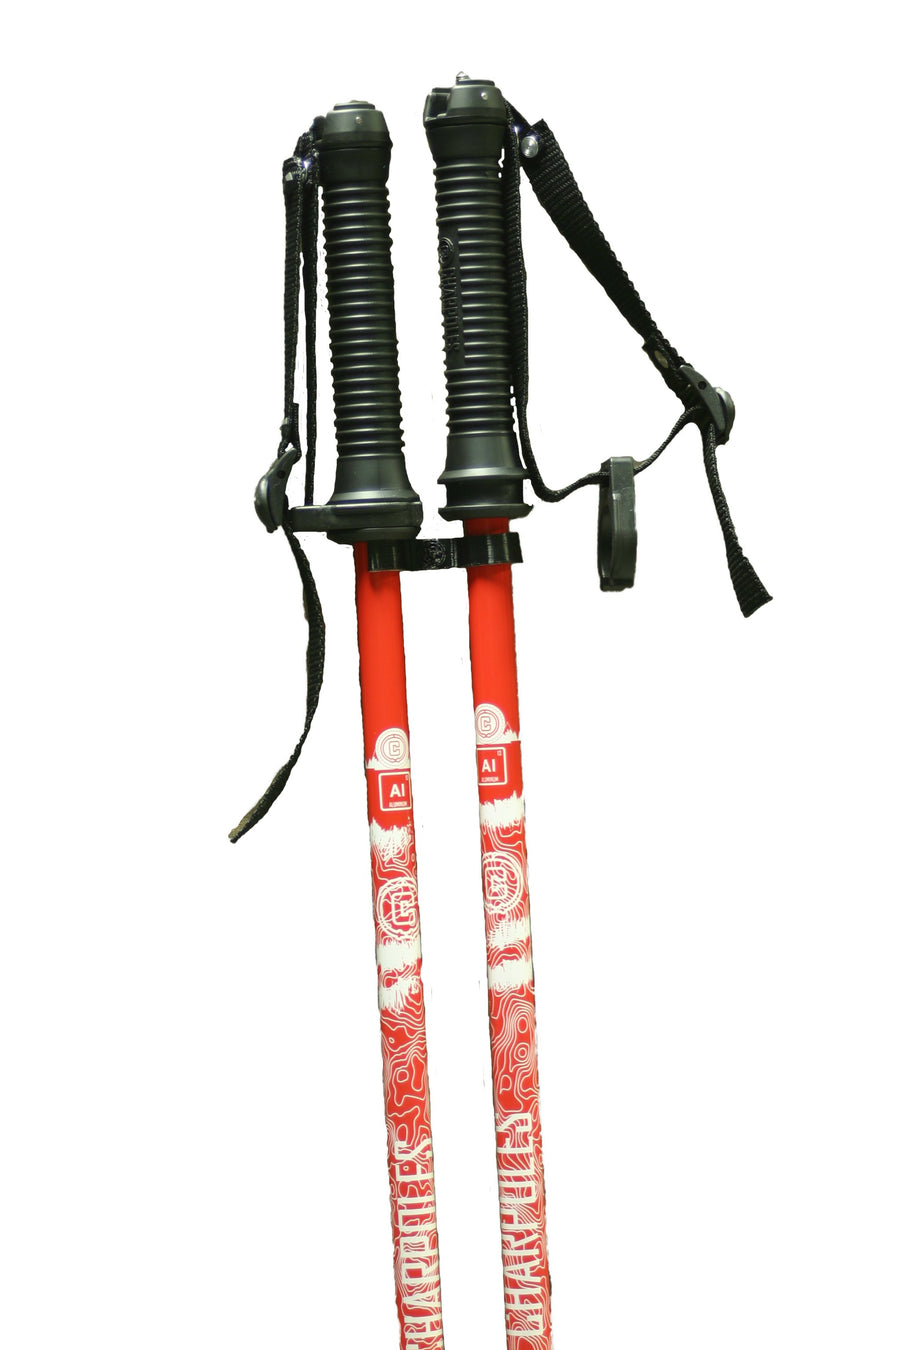 TRAJECTORY Aluminum Ski Pole - Red